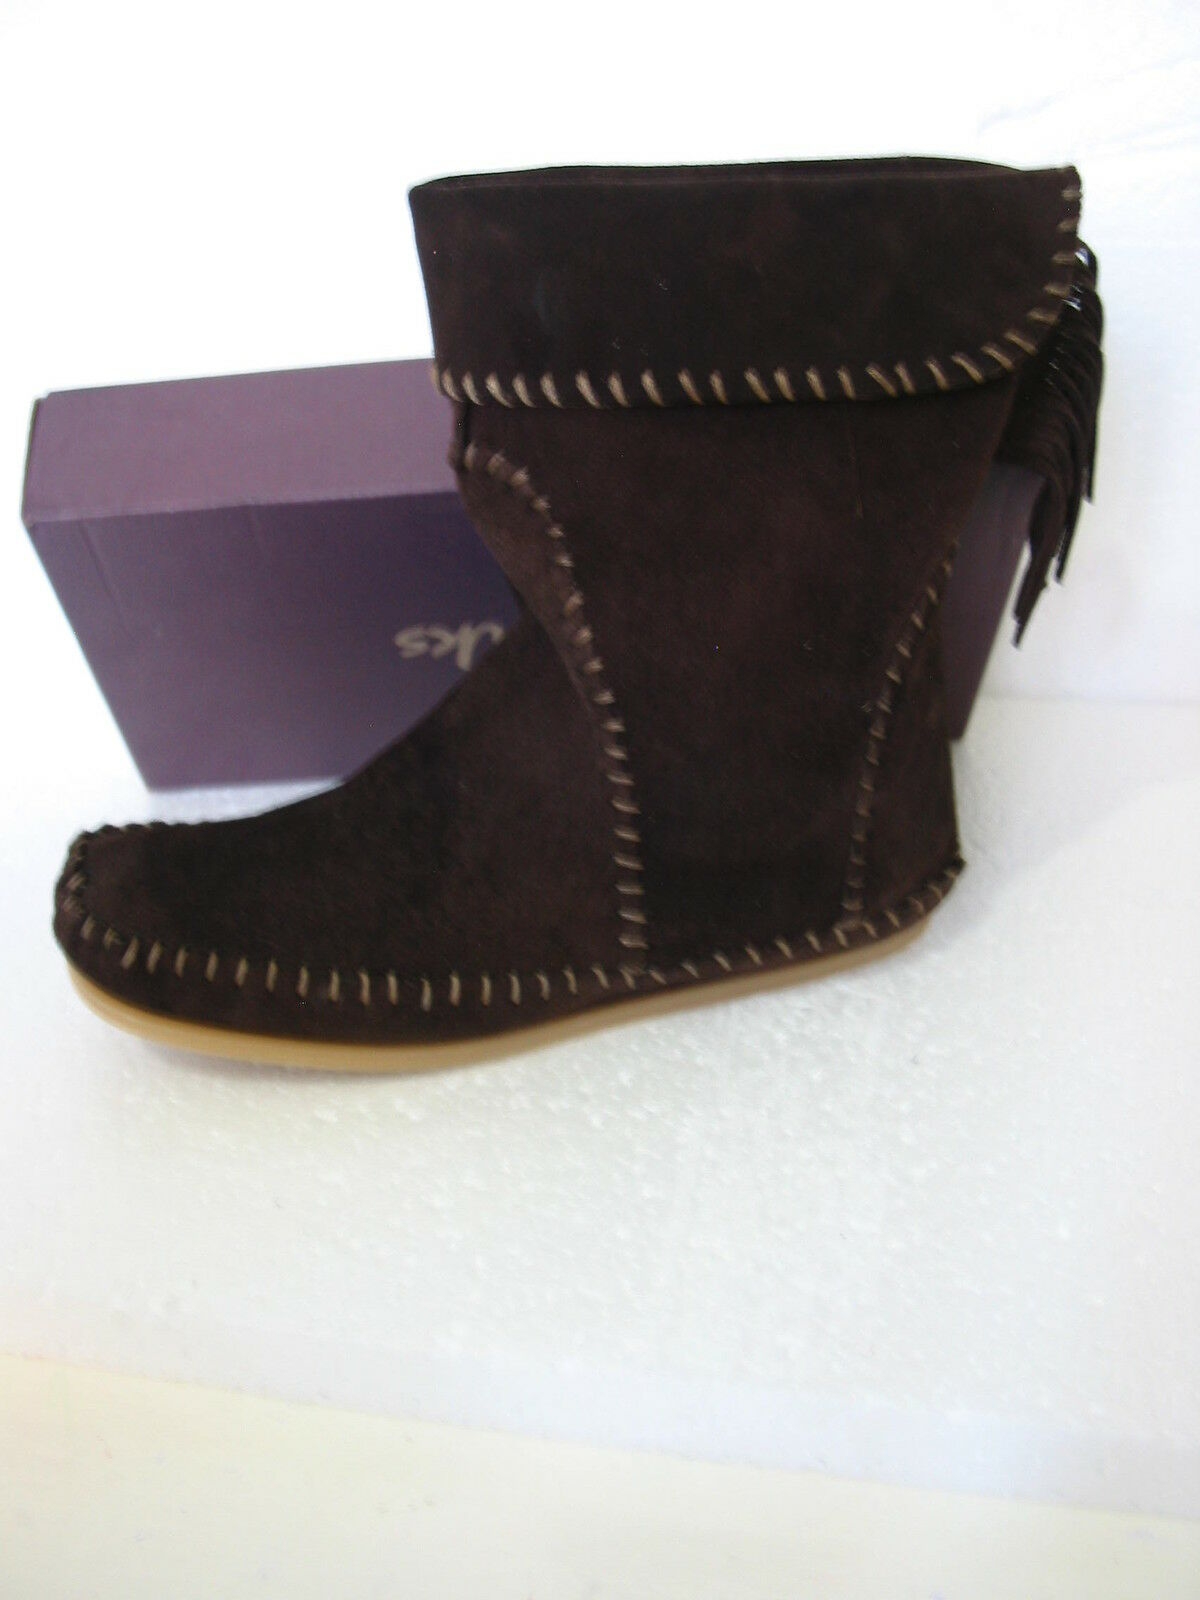 NEW CLARKS SOUL OF AFRICA SUEDE PULL ON BOOTS BOOTS SIZE 5/38